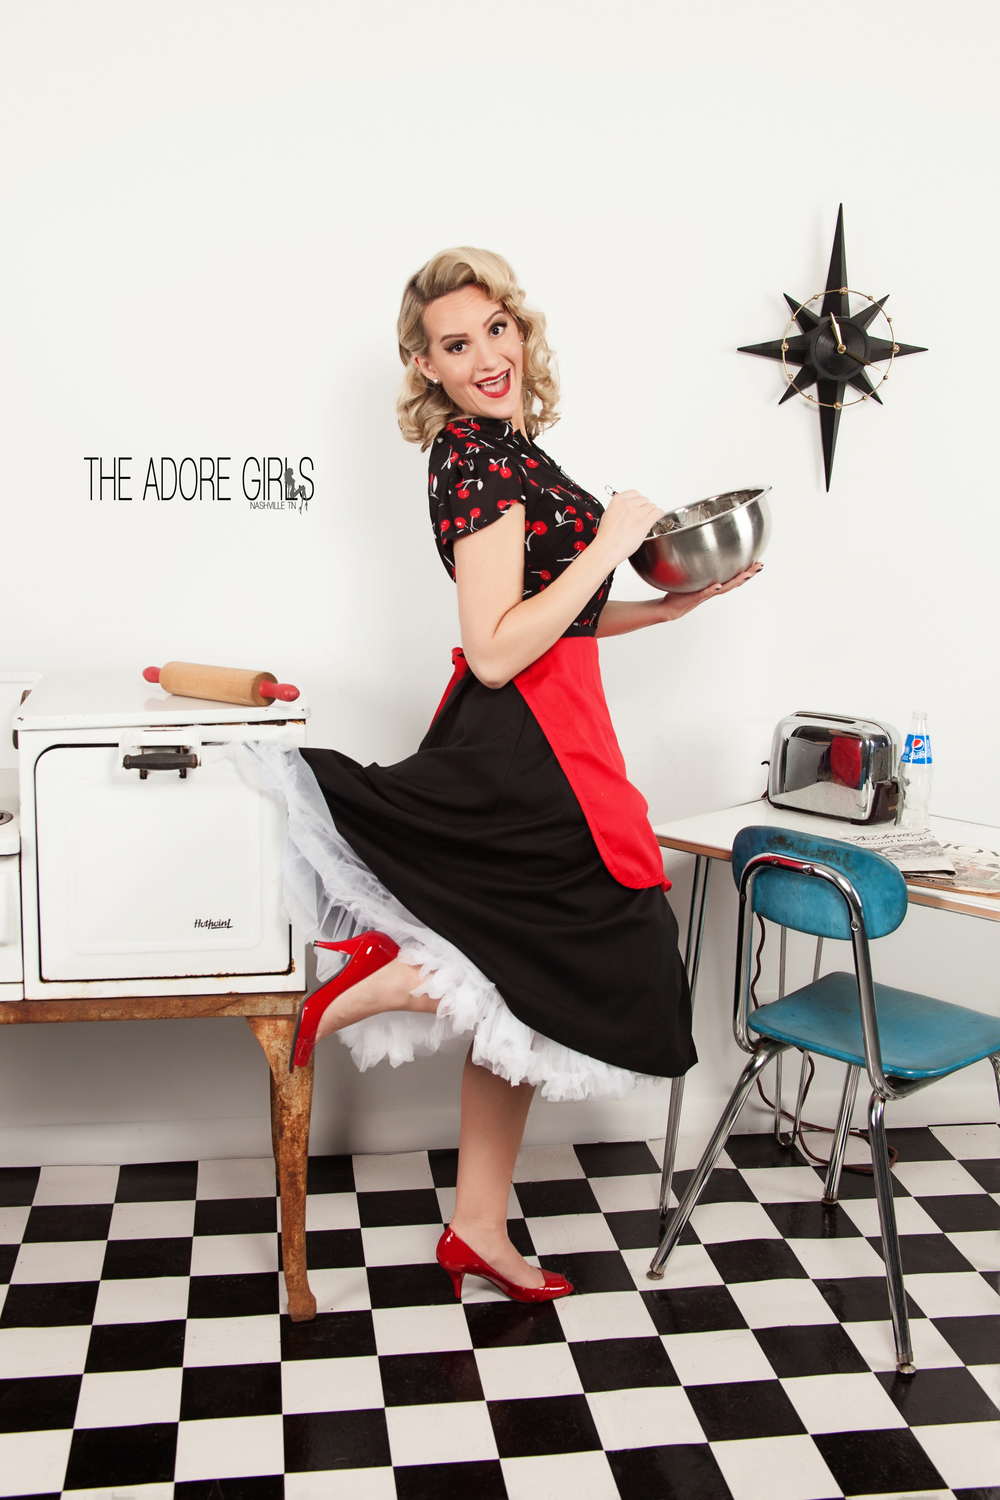 The Adore Girls Pinups-0182.jpg